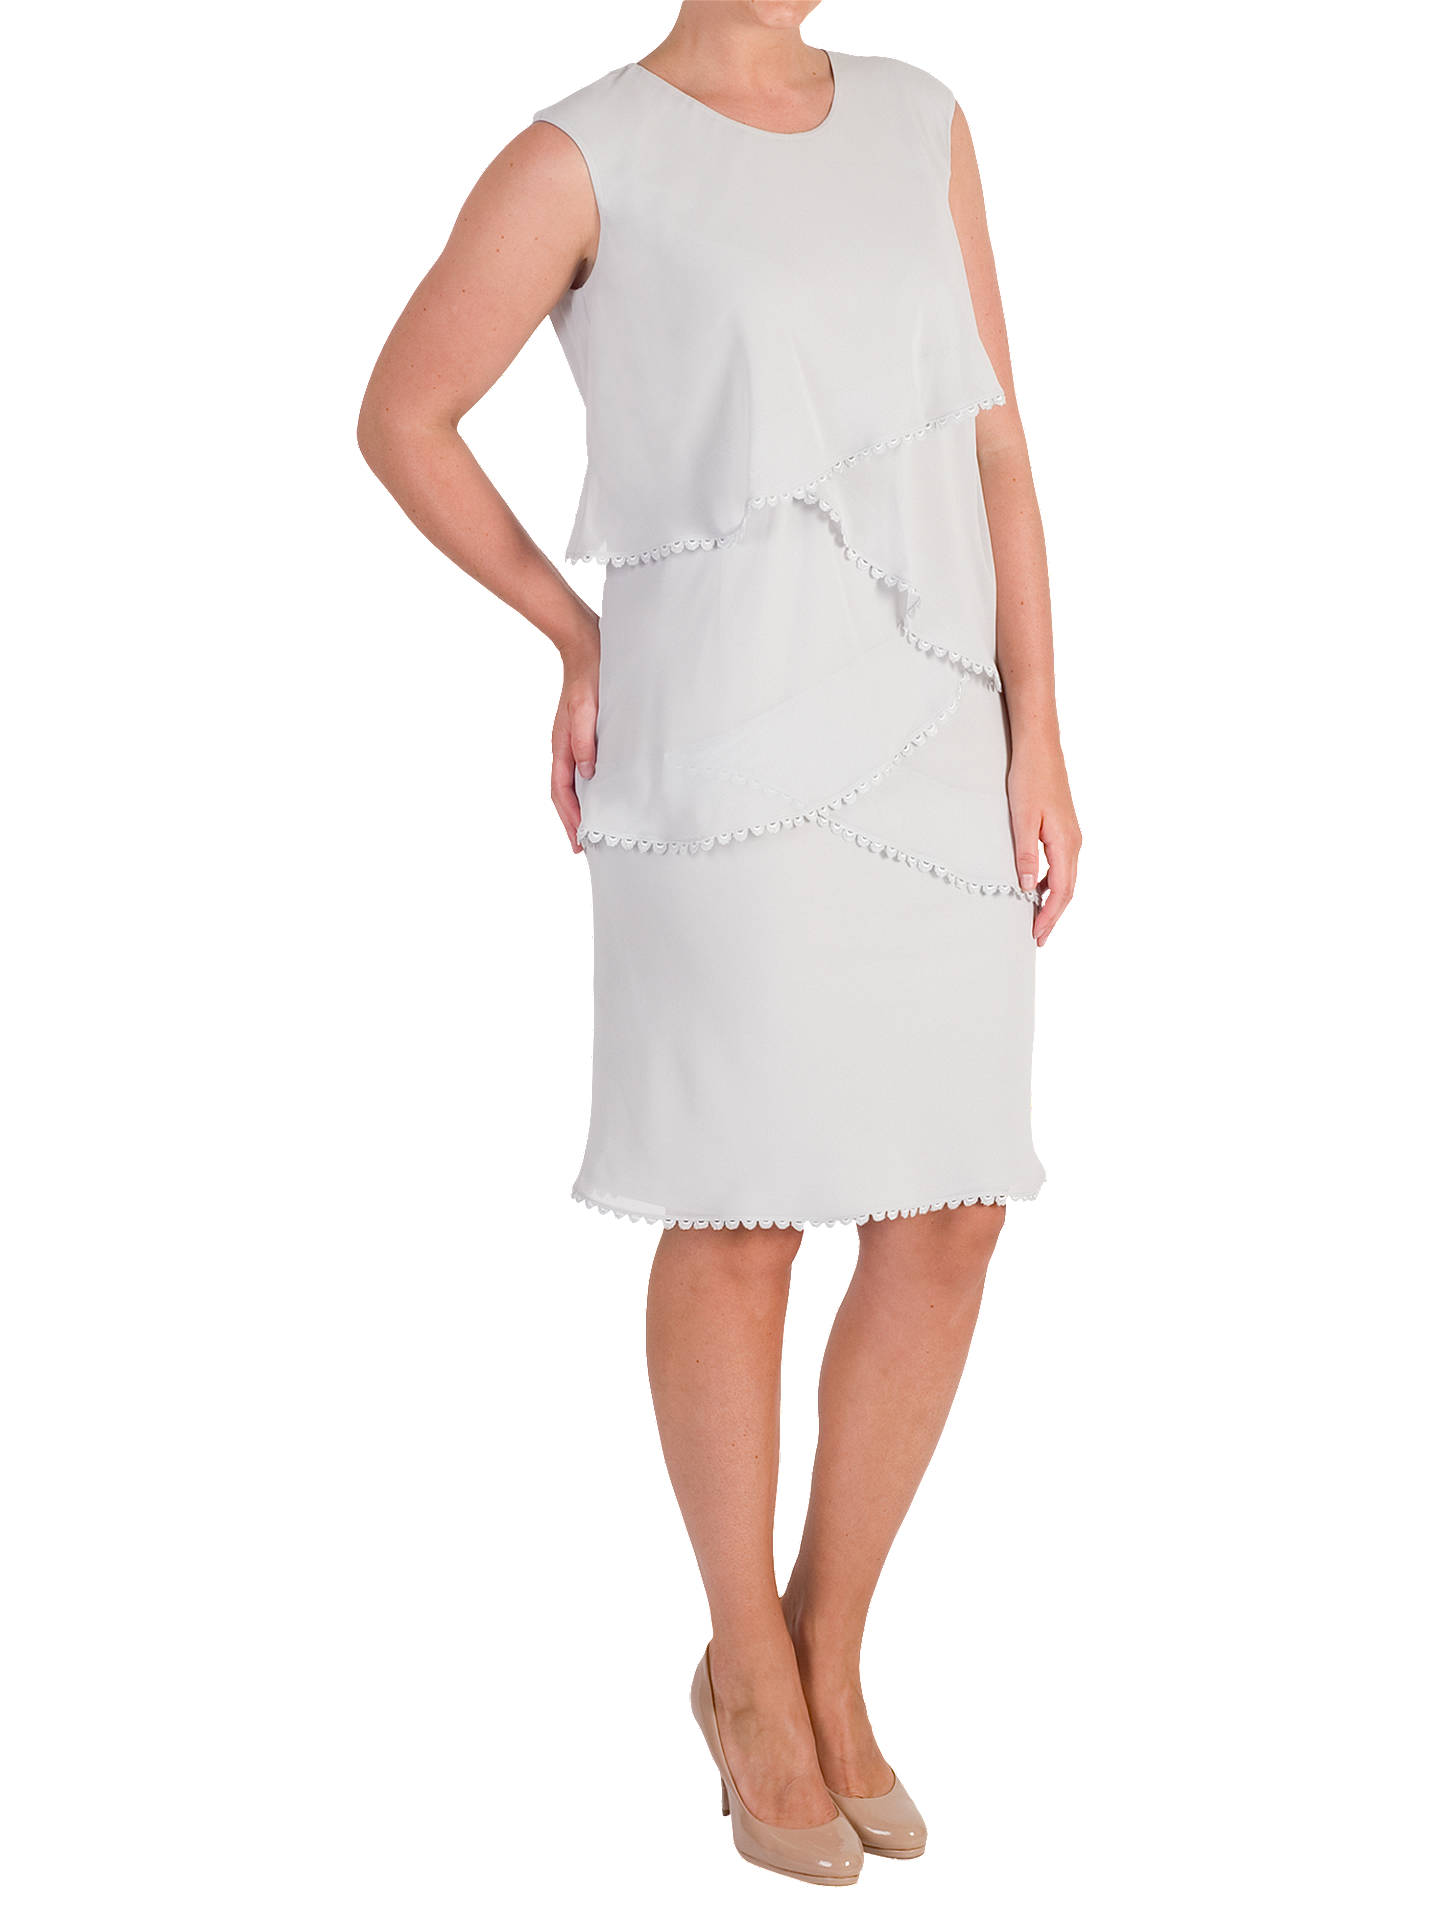 BuyChesca Lace Trim Chiffon Layered Dress, Silver Grey, 14 Online at johnlewis.com